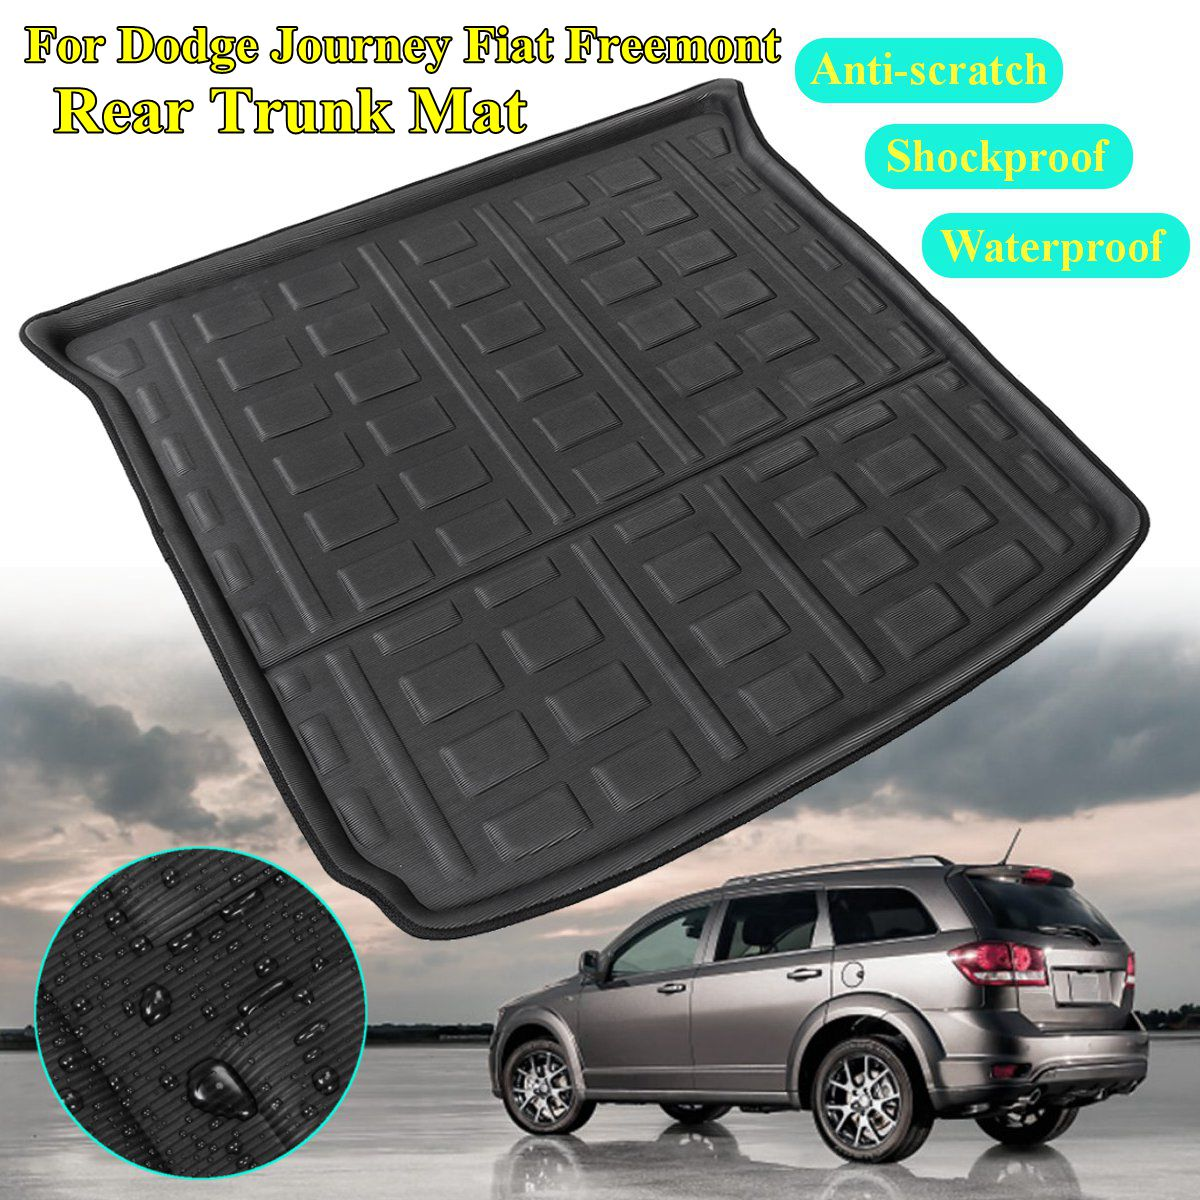 2 Style Rear Cargo Liner Boot For Dodge Journey For Fiat Freemont Seat Models 2009 2010 11-2018 5&7 Trunk Floor Mat Tray Carpet